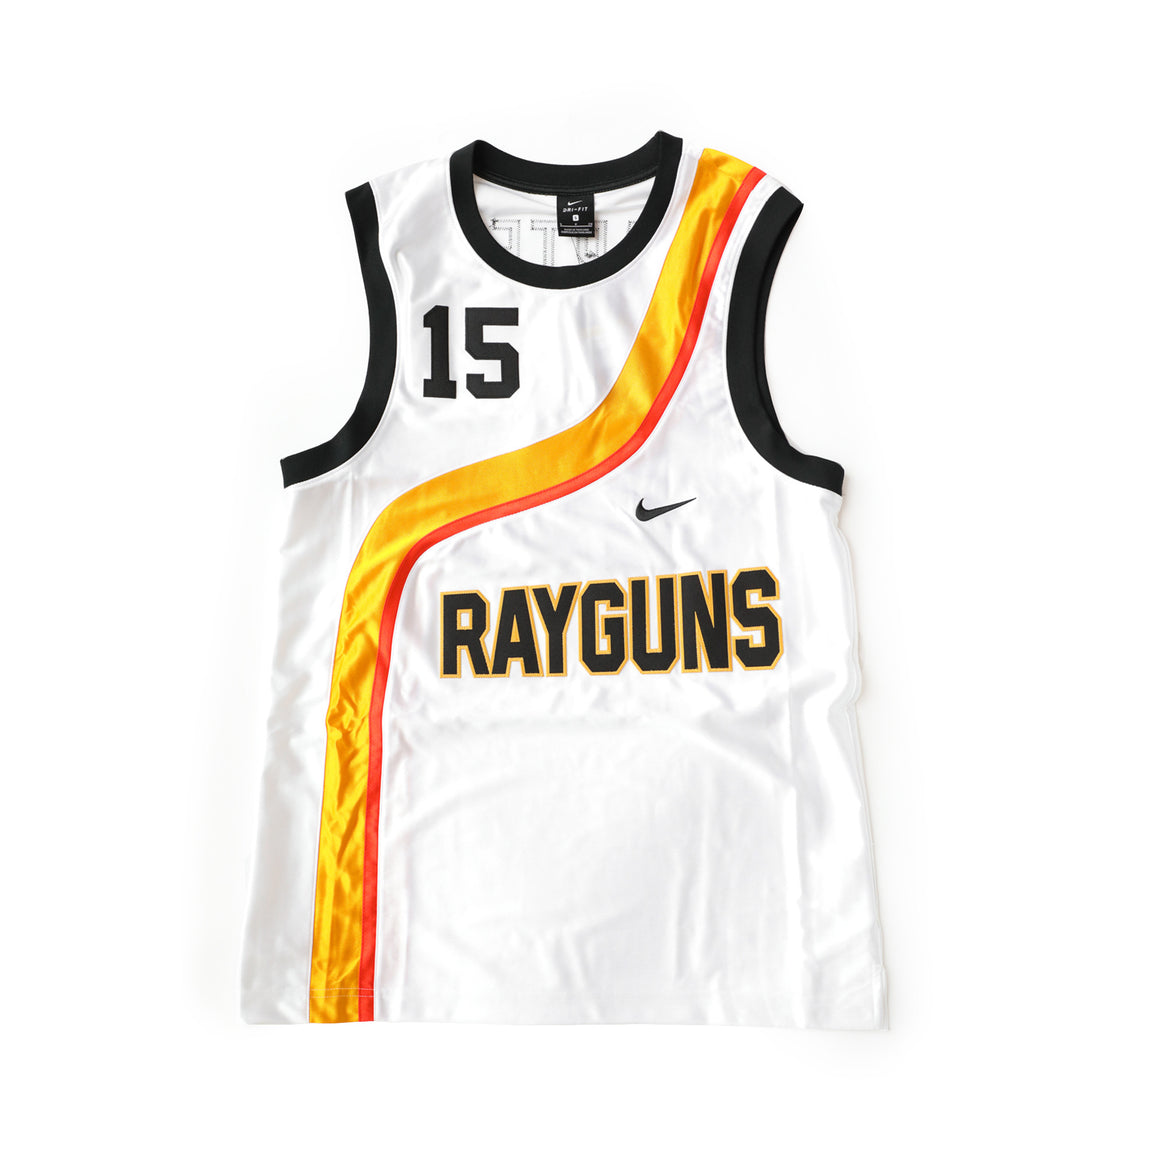 Nike Rayguns Jersey (White/University Gold/Team Orange-Black) - Nike Rayguns Jersey (White/University Gold/Team Orange-Black) -